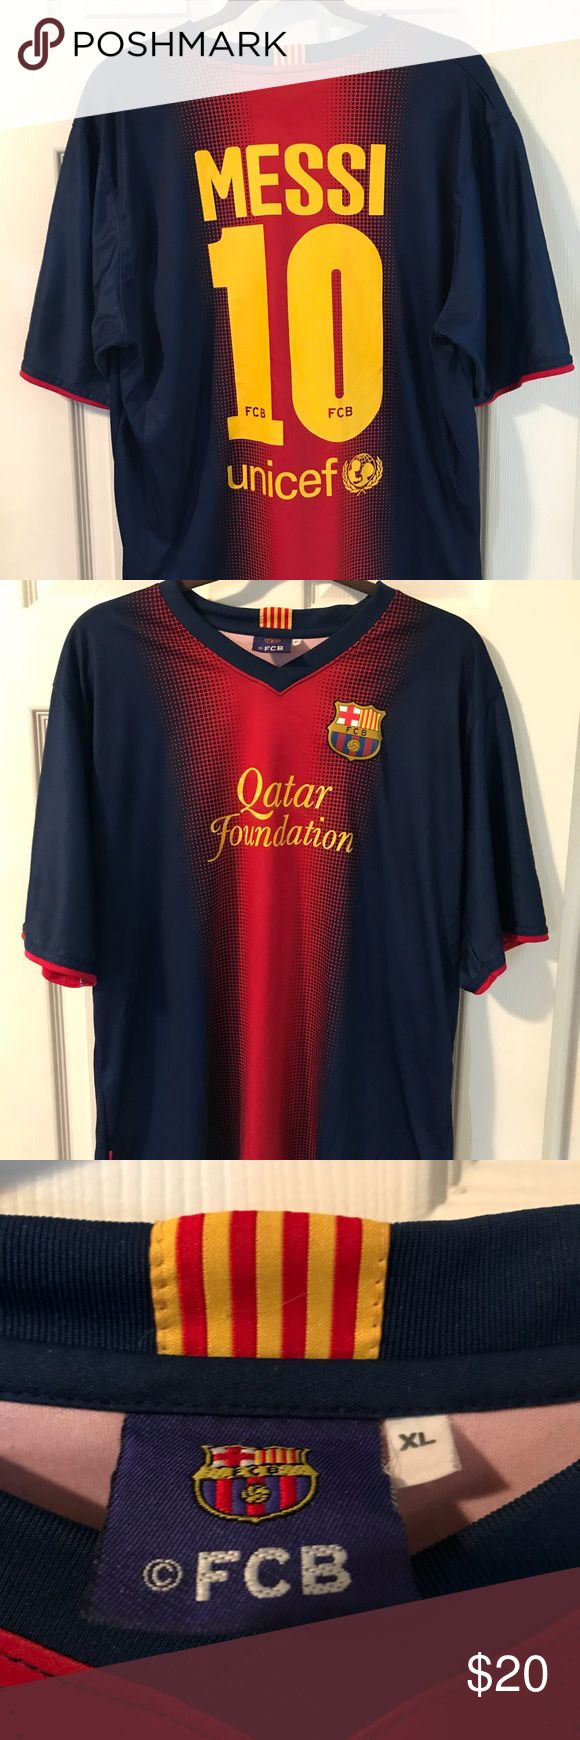 Lionel Messi Jersey Original Lionel Messi jersey from Barcelona, Spain. This garment has been lightly warn with no signs of damage. Great garment for the upcoming summer. Shirts Tees - Short Sleeve